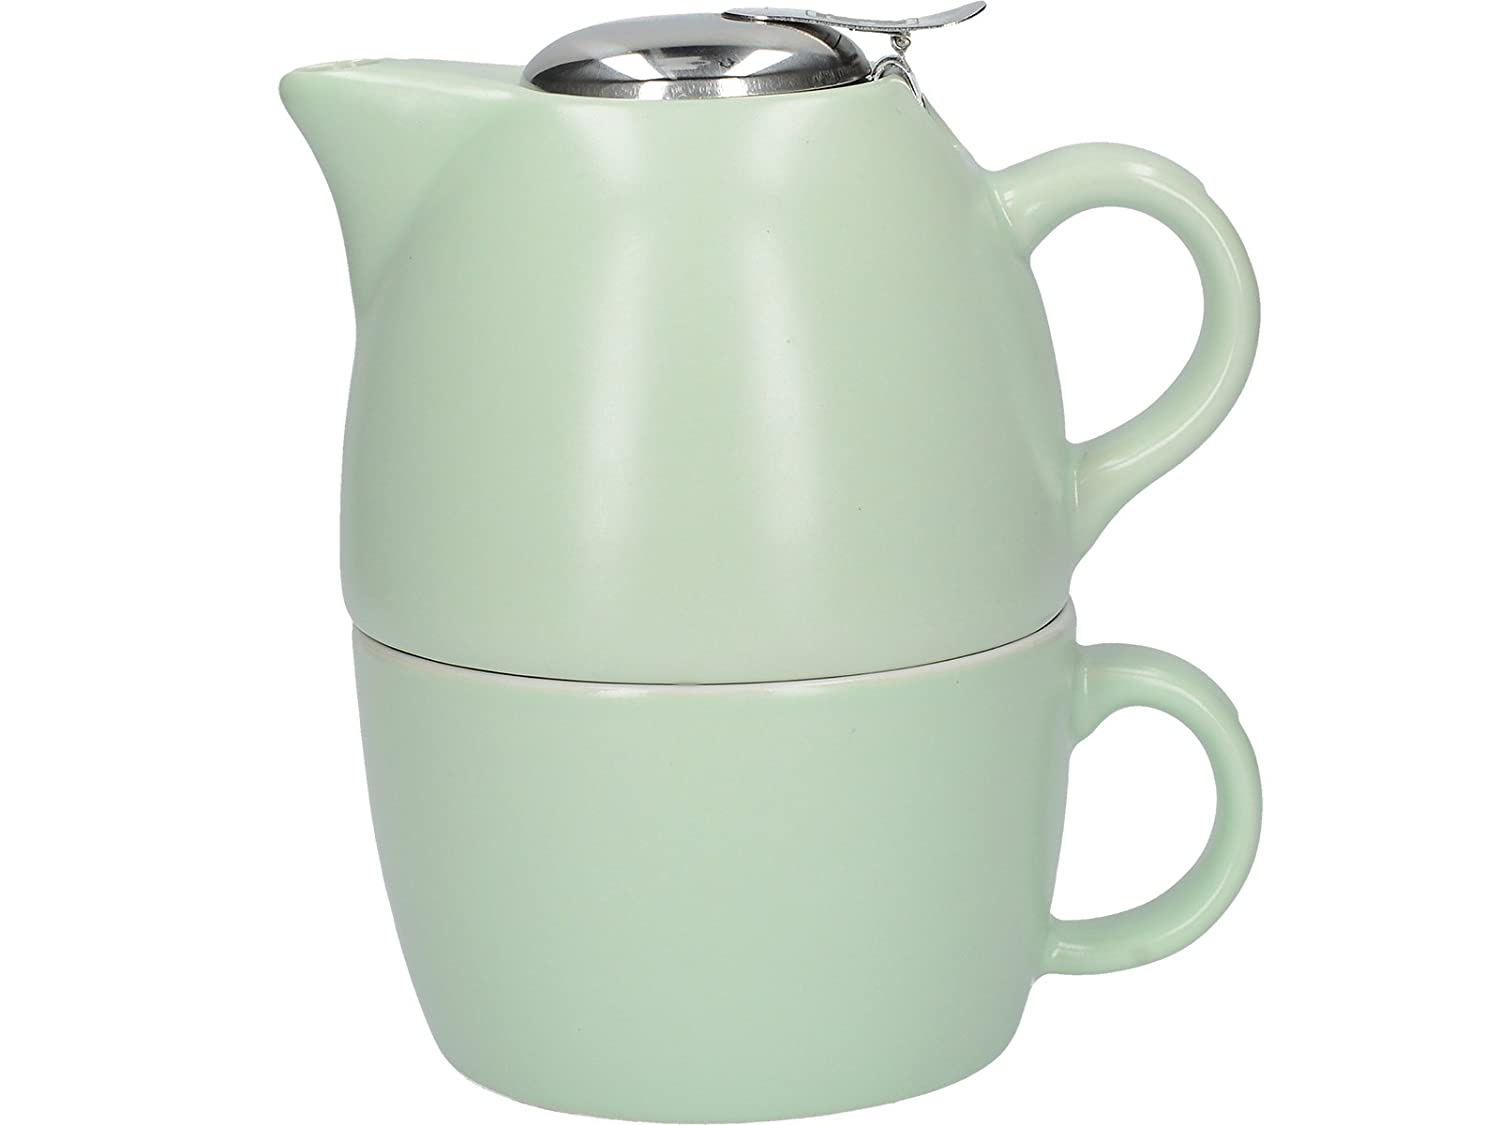 La Cafetière Barcelona Collection Tea For One Ceramic Tea Cup and Teapot Set – Pistachio Green La Cafetiere (UK) Limited 5212188